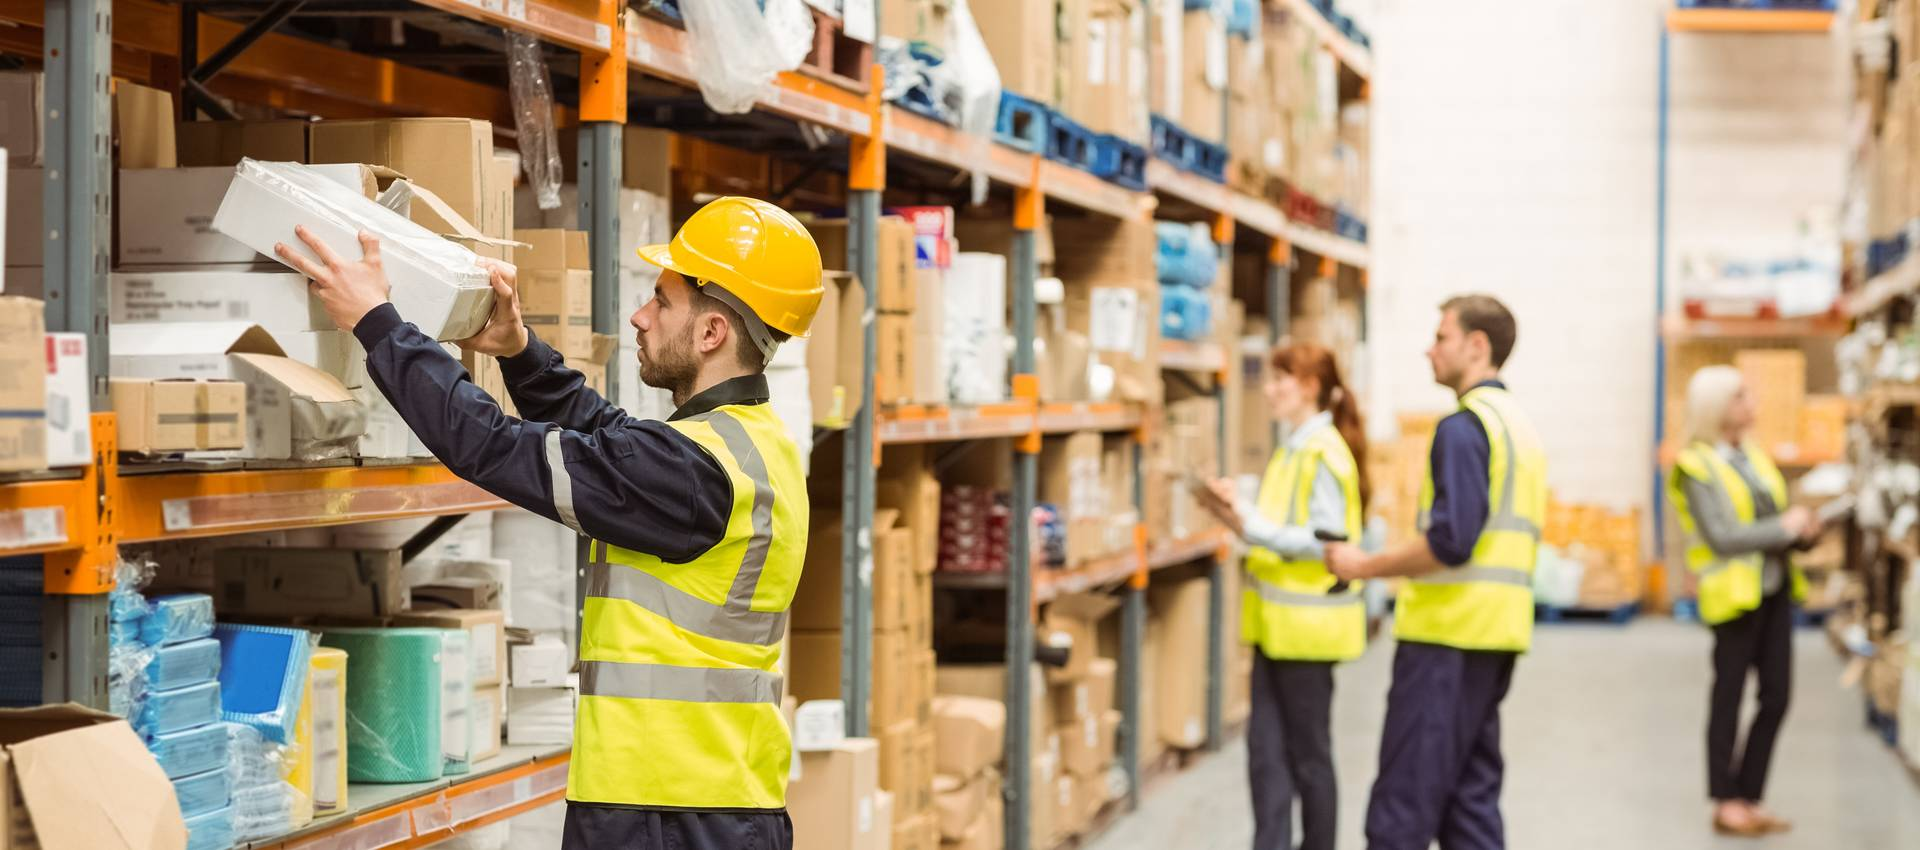 WMS for Small Business: 5 Things to Consider Before Buying